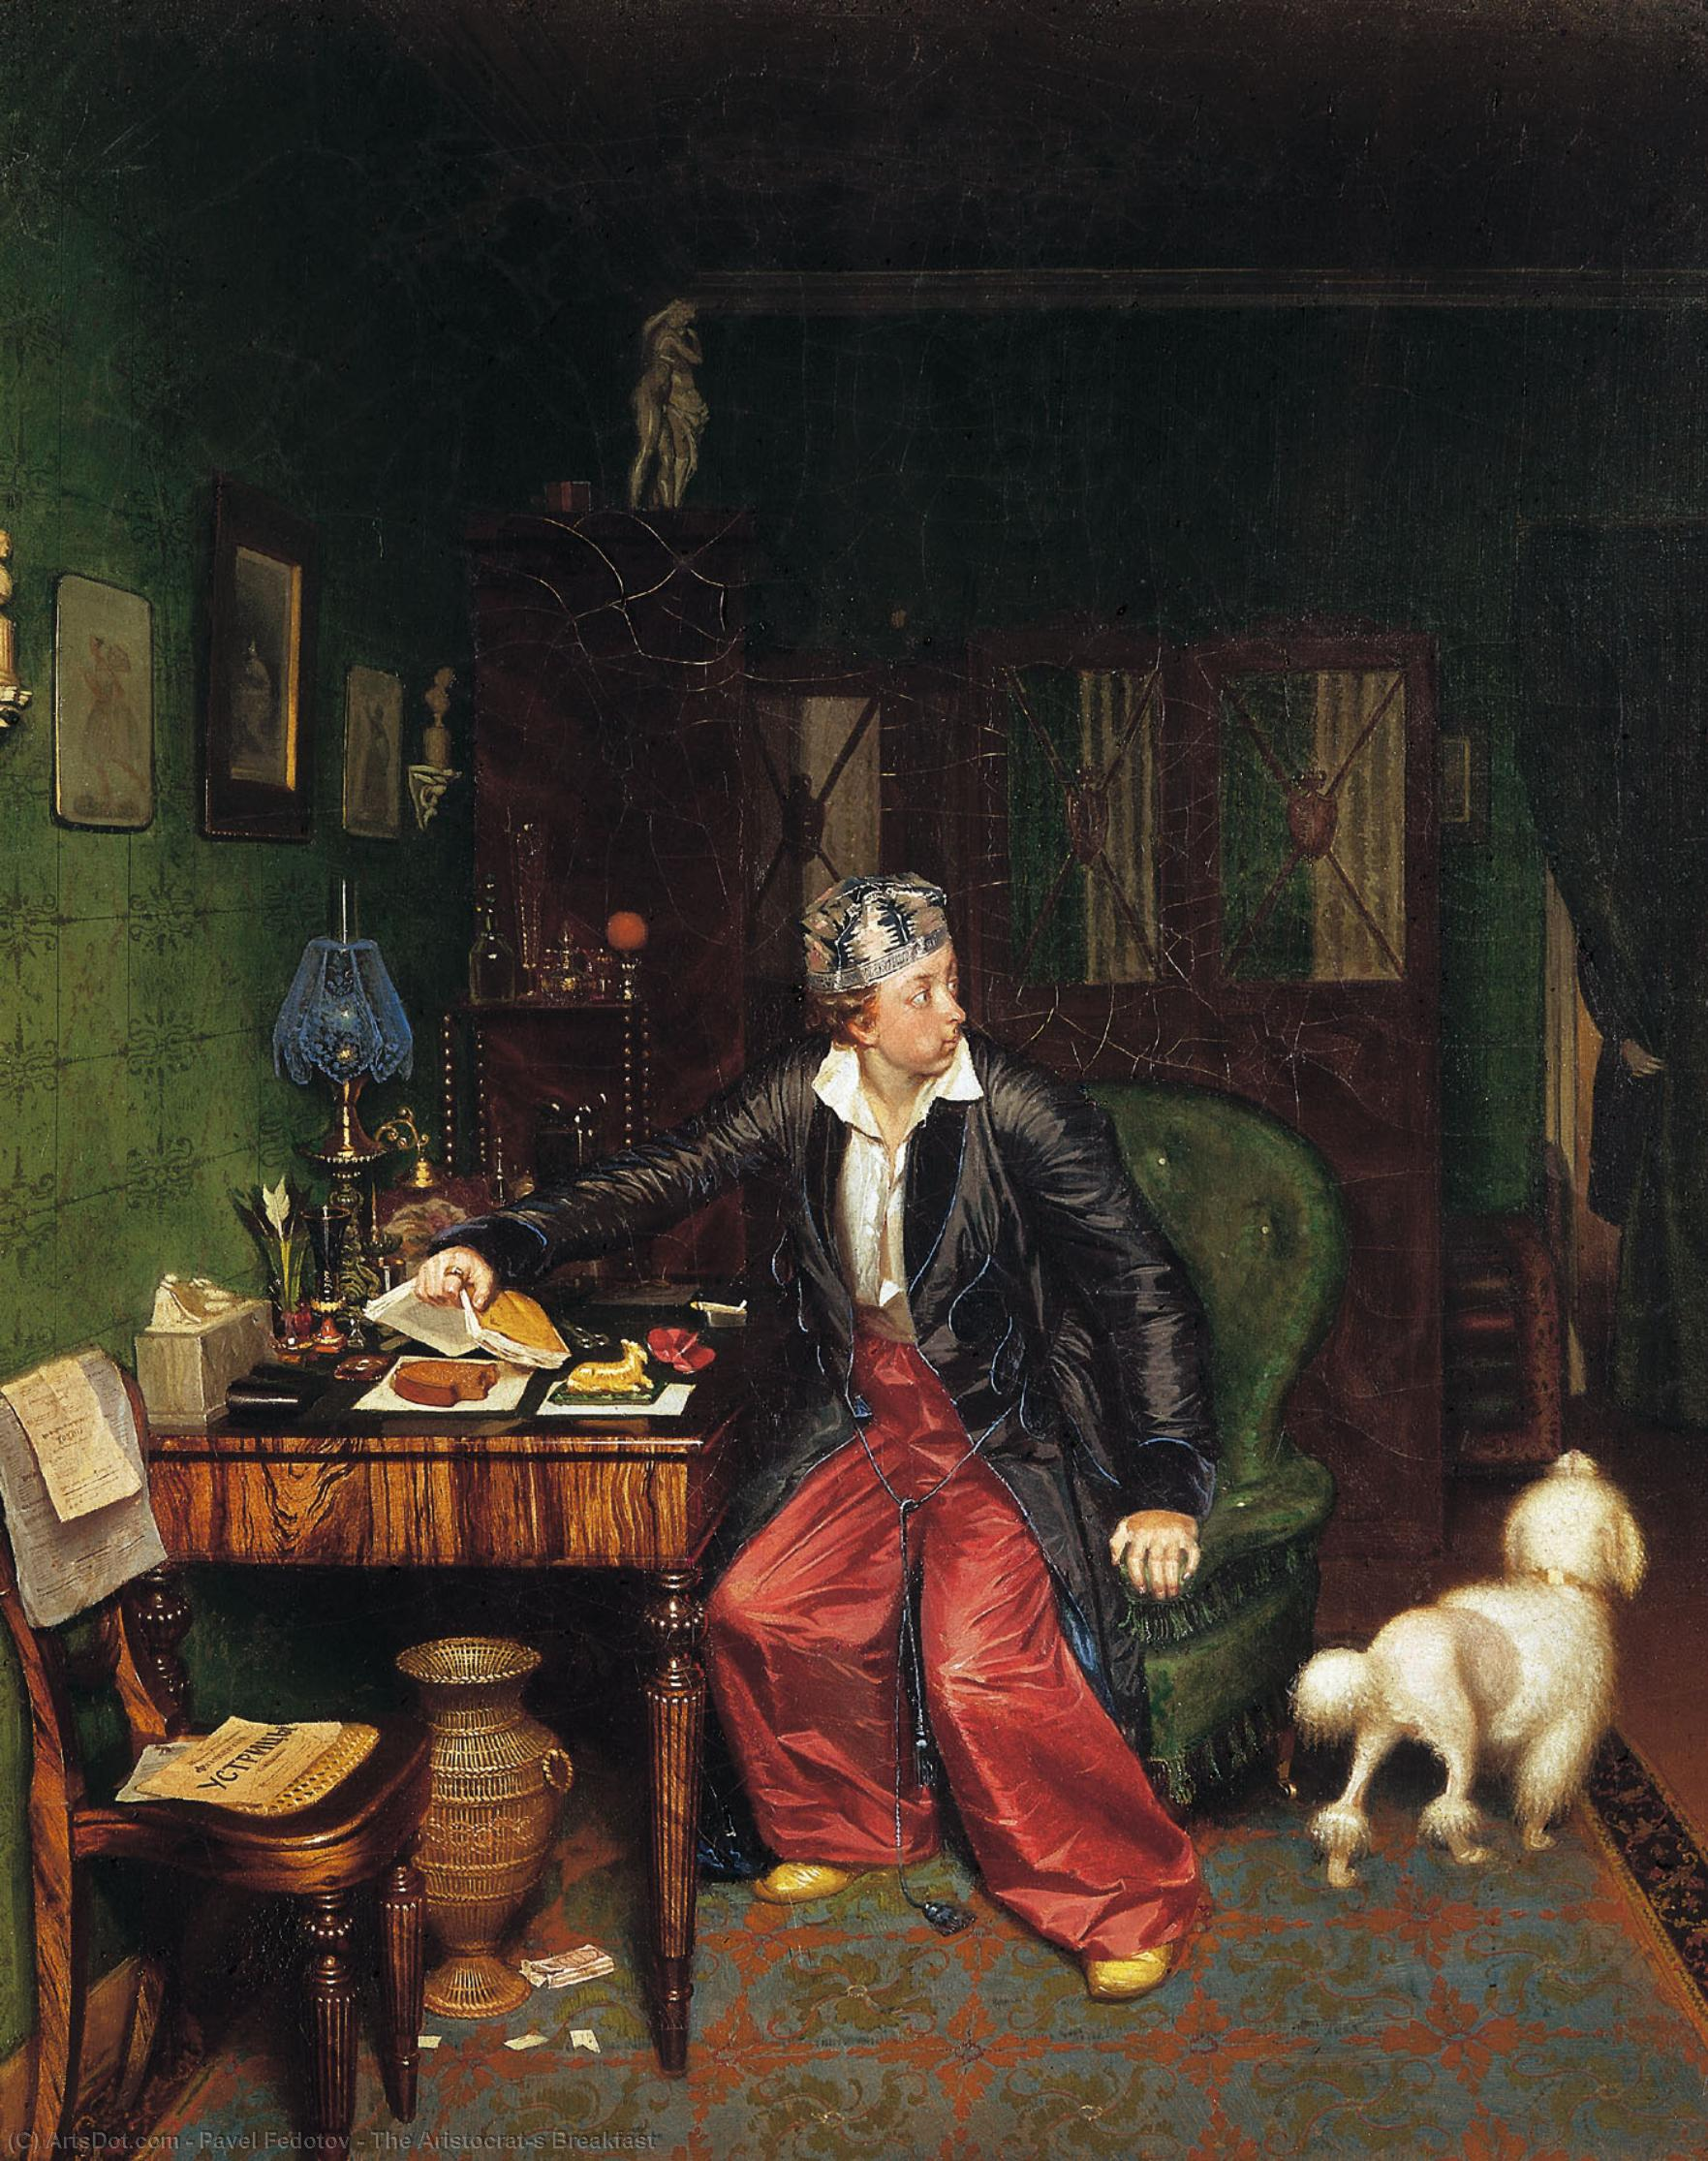 Buy Museum Art Reproductions : The Aristocrat`s Breakfast, 1850 by Pavel Fedotov (1815-1852) | ArtsDot.com